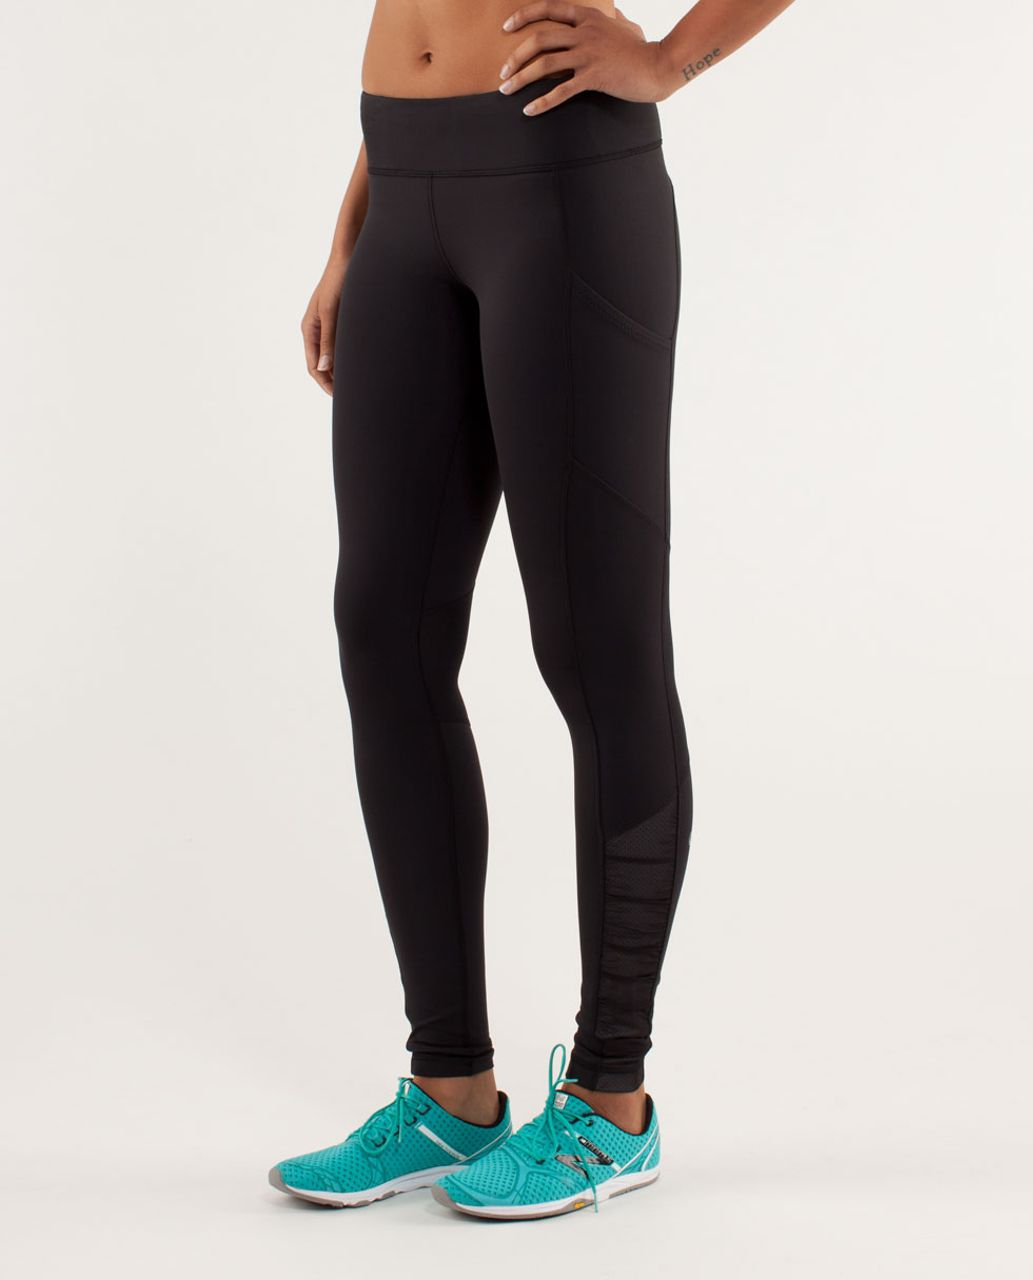 Lululemon Run:  Get Up And Glow Tight - Black